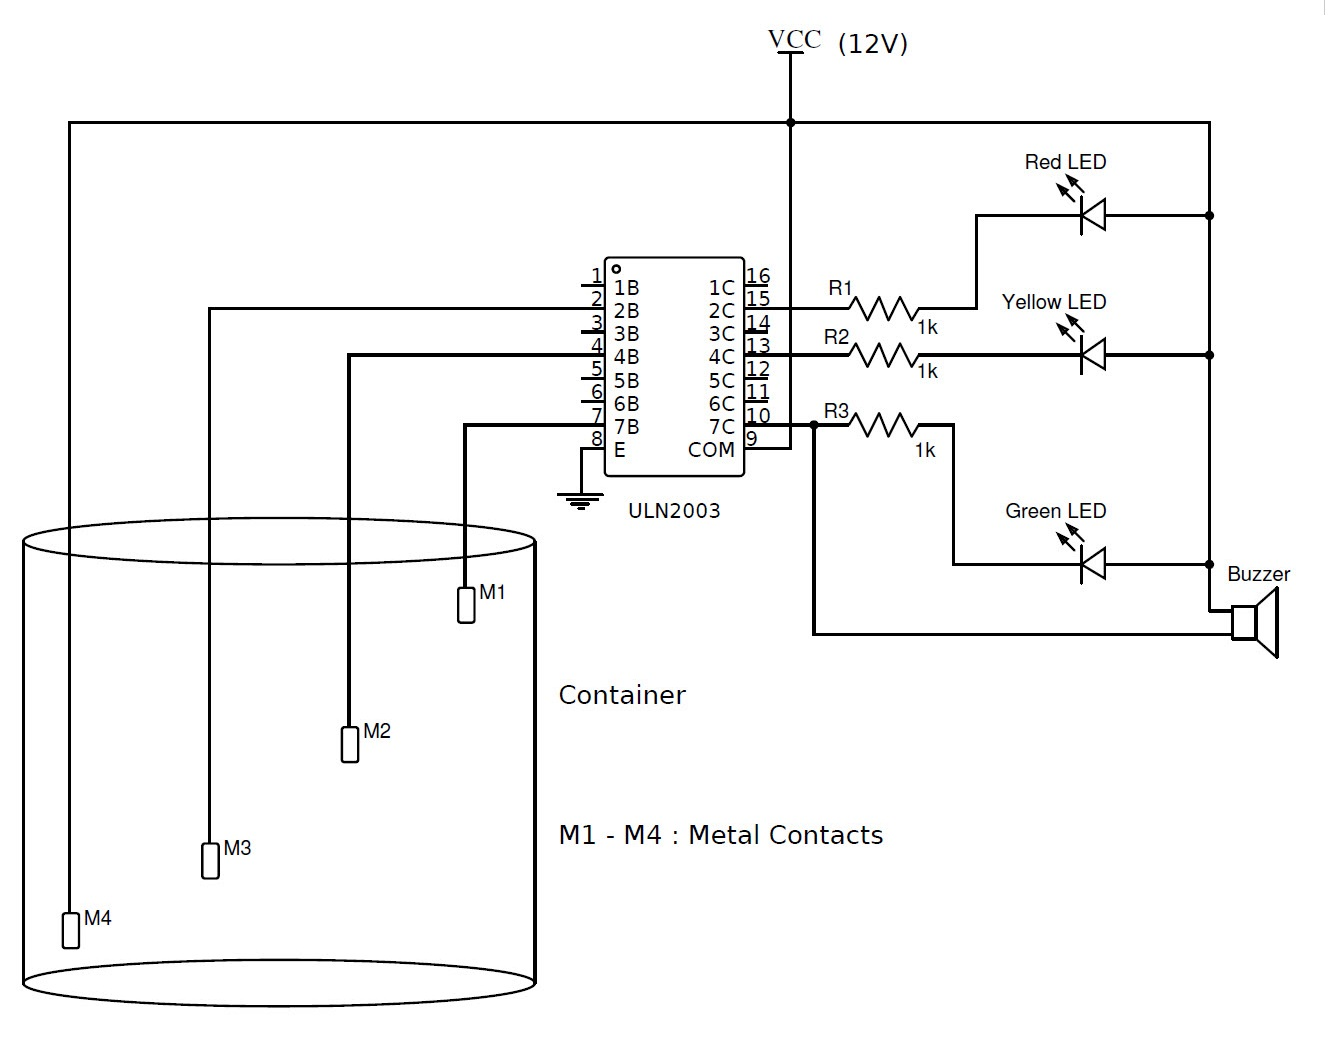 Simple Water Level Indicator With Alarm 3 Tested Circuits Touch Sensor Based On Monostable Mode Of 555 Timer Circuit Diagram